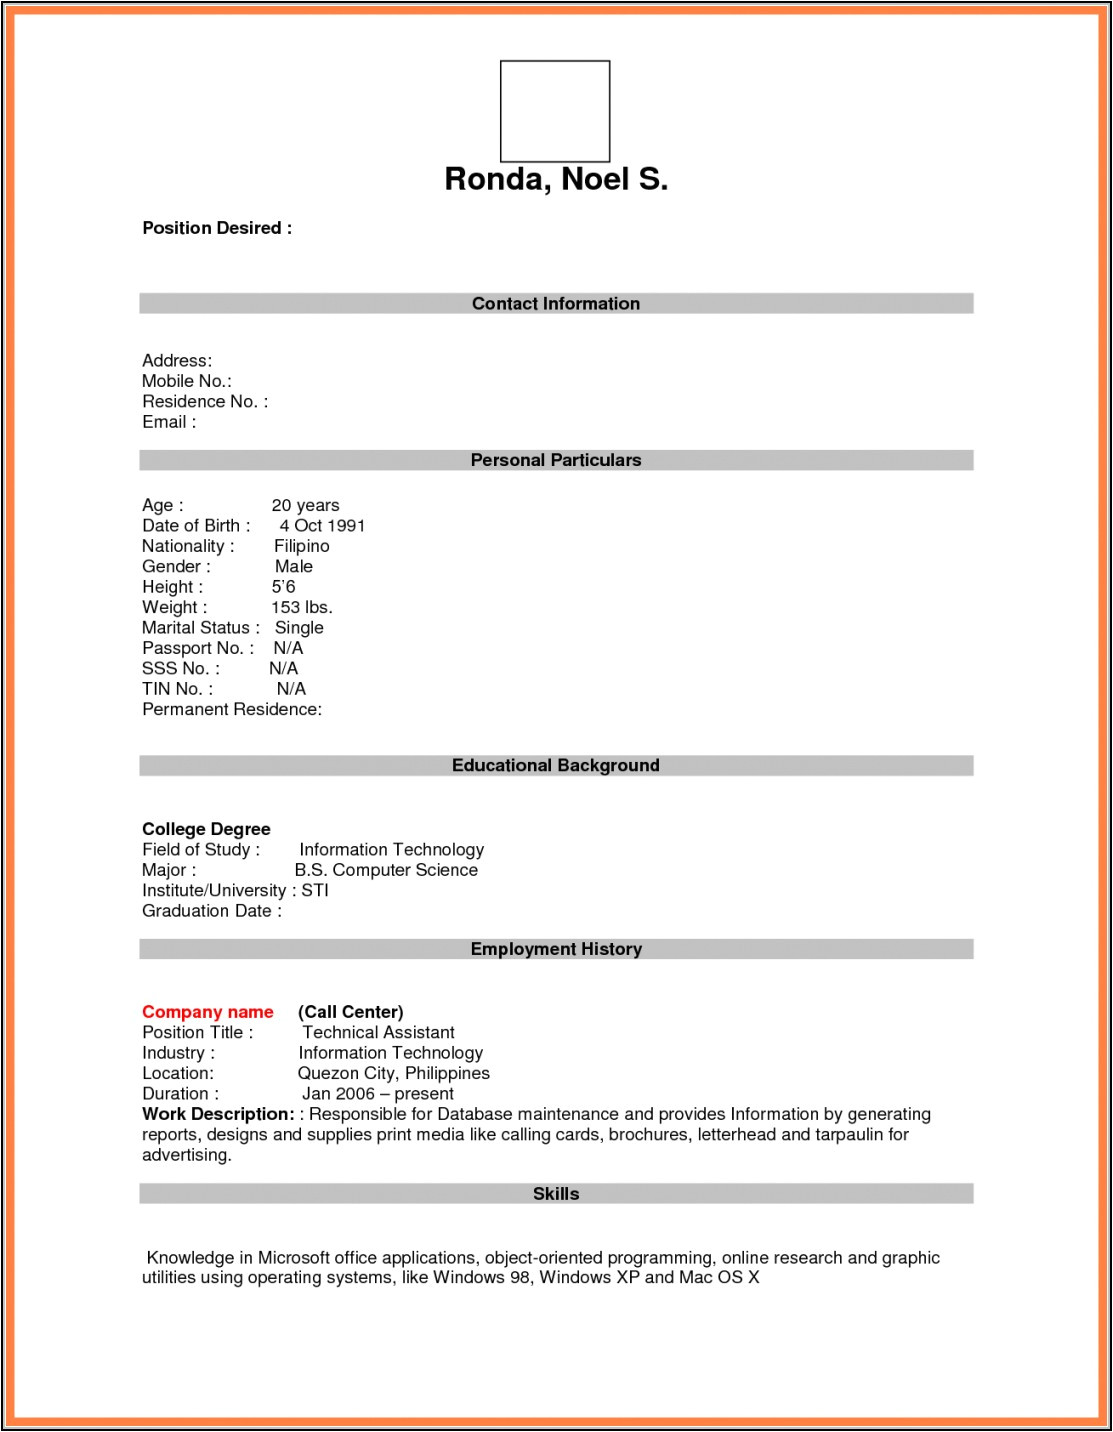 blank resume form for job application